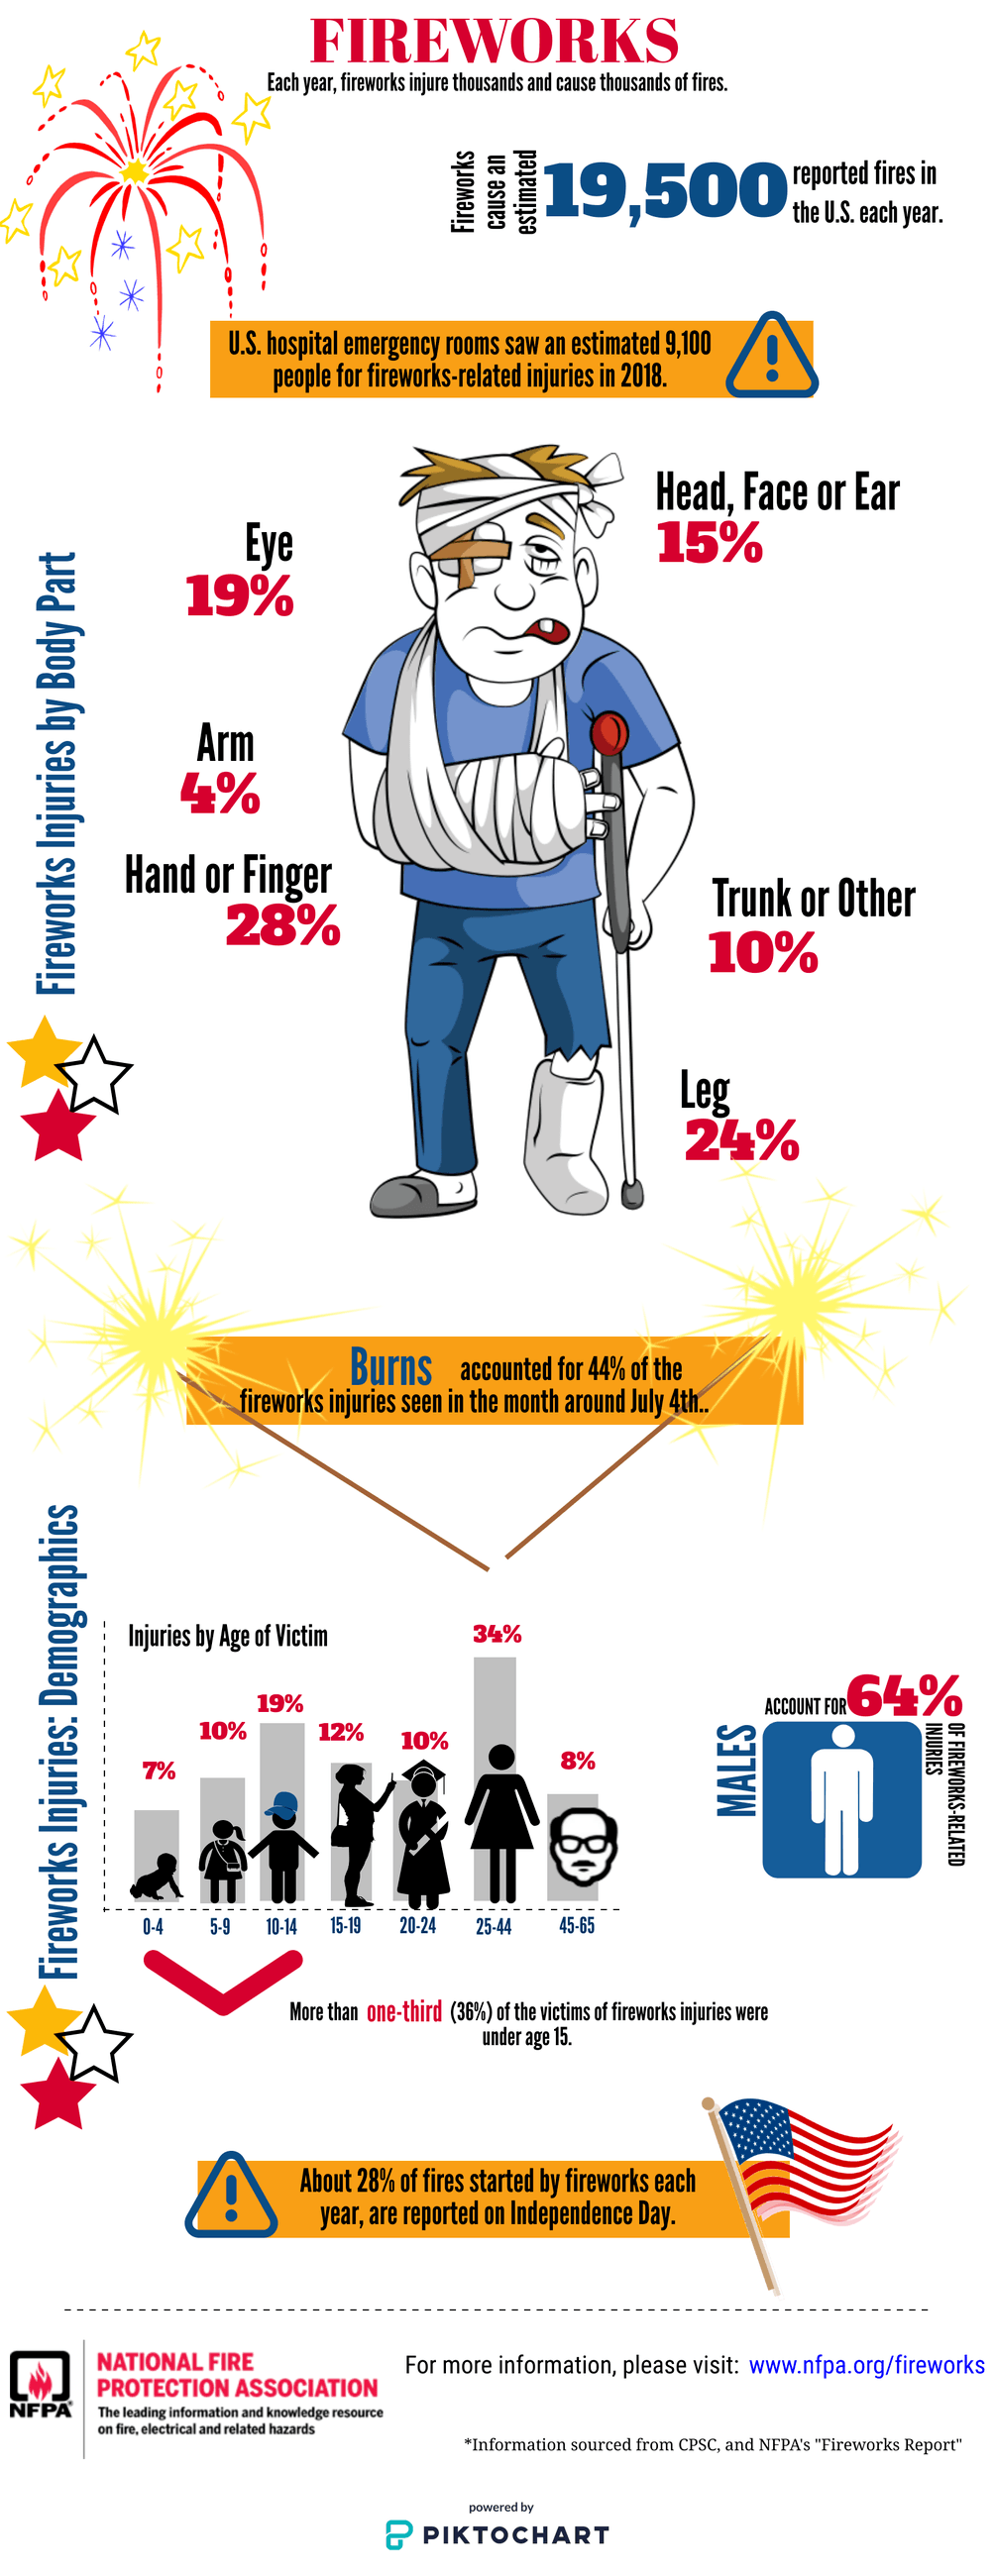 FireworksInfographic2020